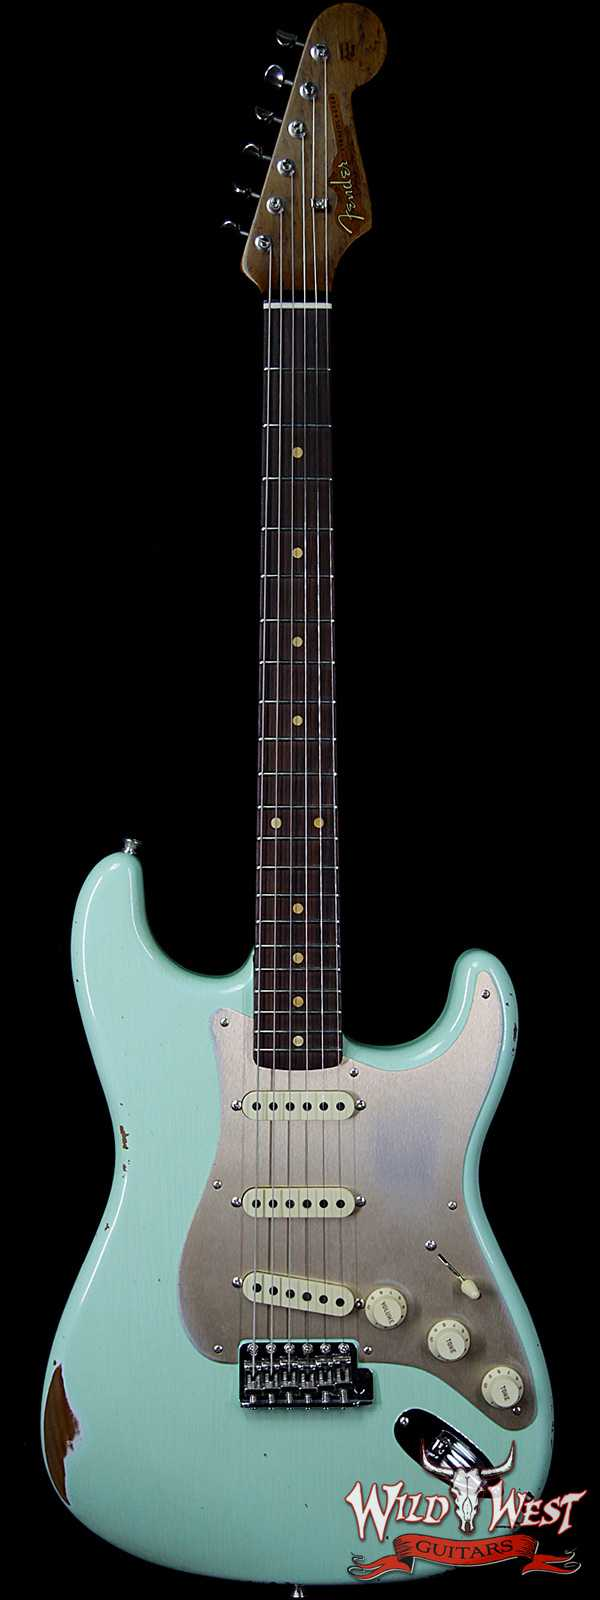 Fender Custom Shop Roasted 1960 Stratocaster Relic 3A Birdseye Neck 3A Rosewood Slab Board Surf Green